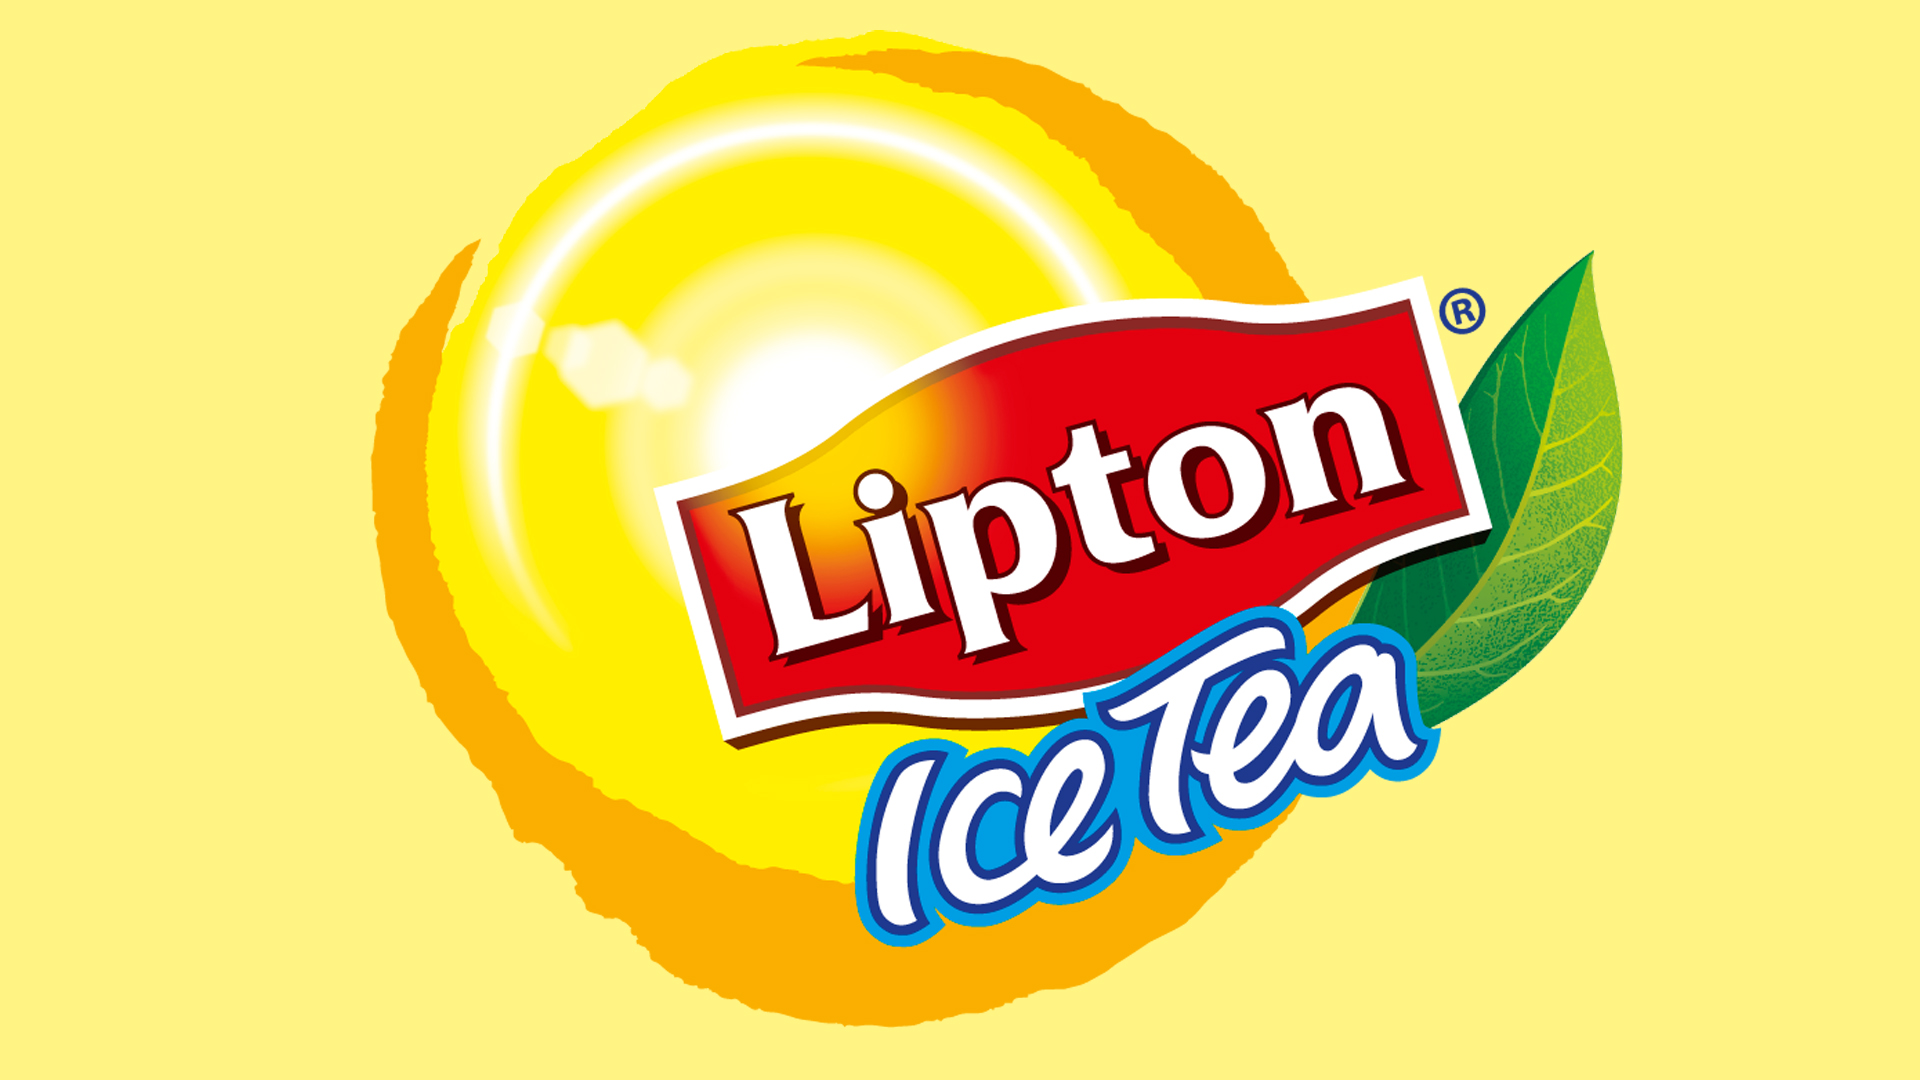 Meaning Lipton logo and symbol.